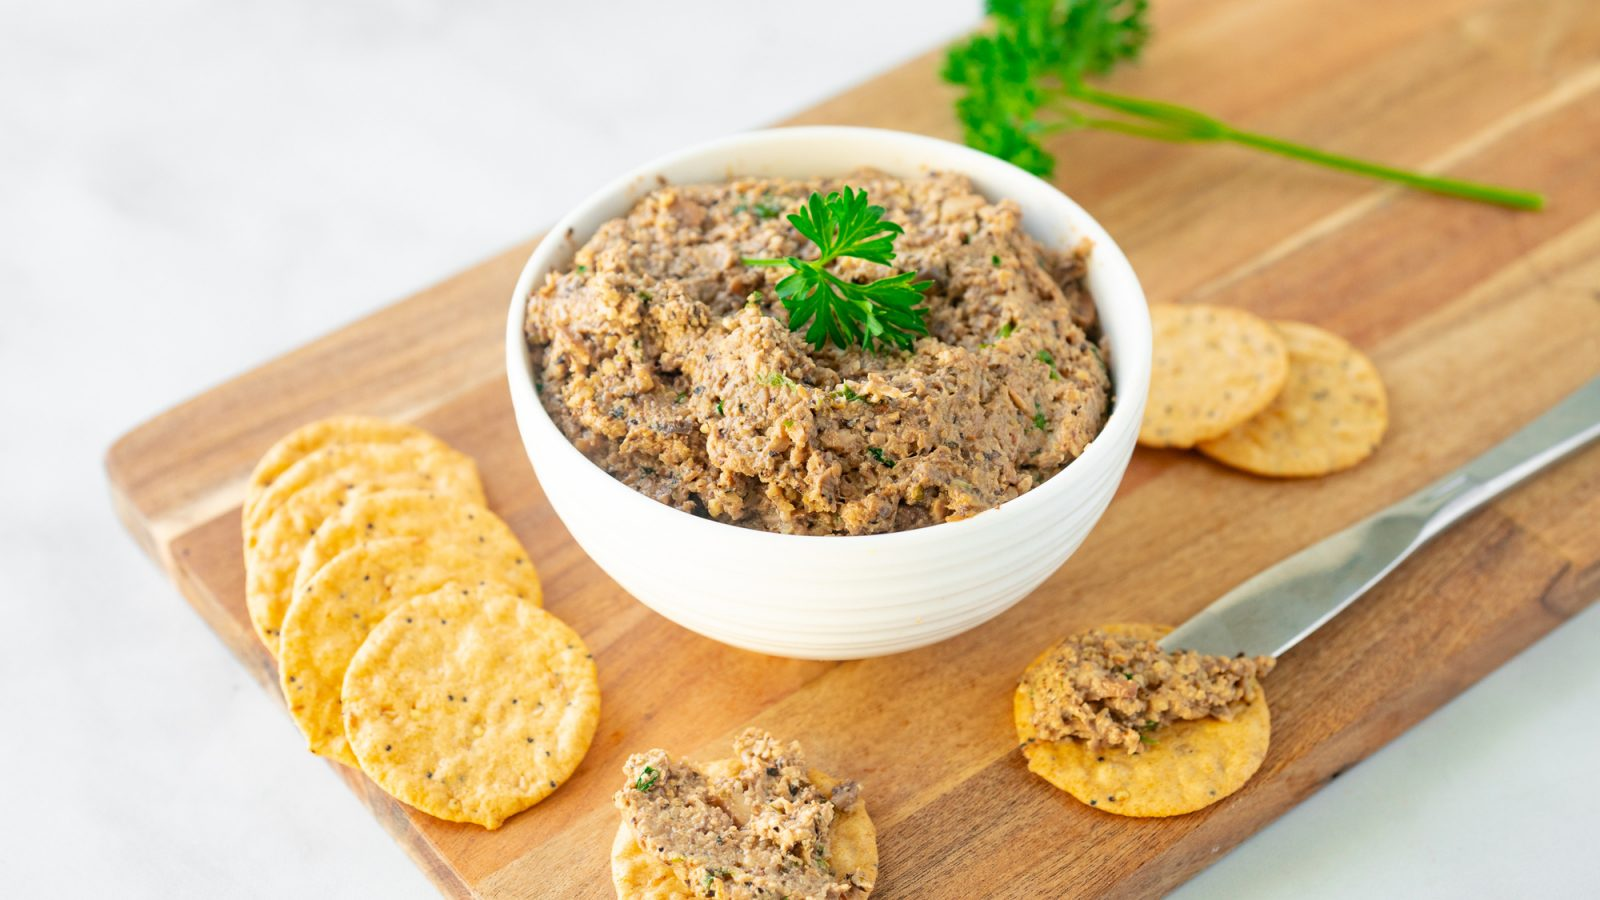 vegan pate with mushrooms and walnuts on serving platter